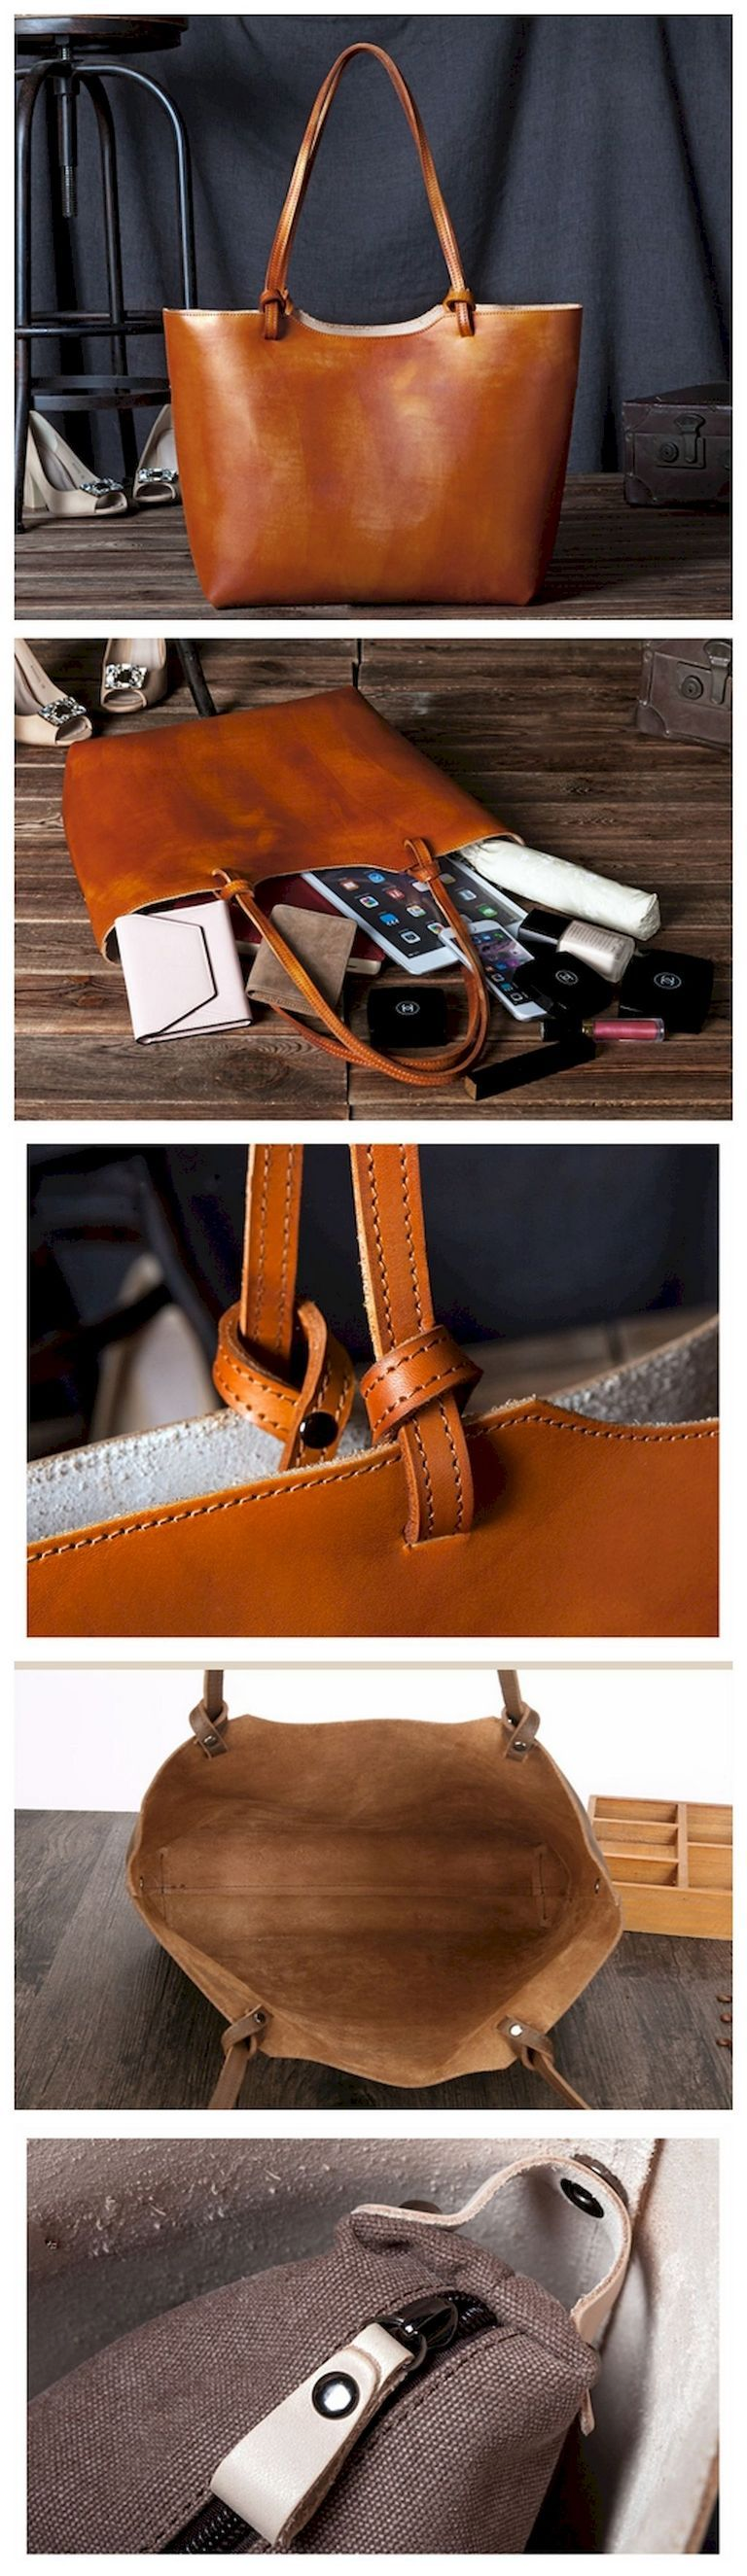 Cool 101 Beautiful Leather Shoulder Bag Designs to Purchase this Year https://bitecloth.com/2017/06/11/beautiful-leather-shoulder-bag-designs-to-purchase-this-year/